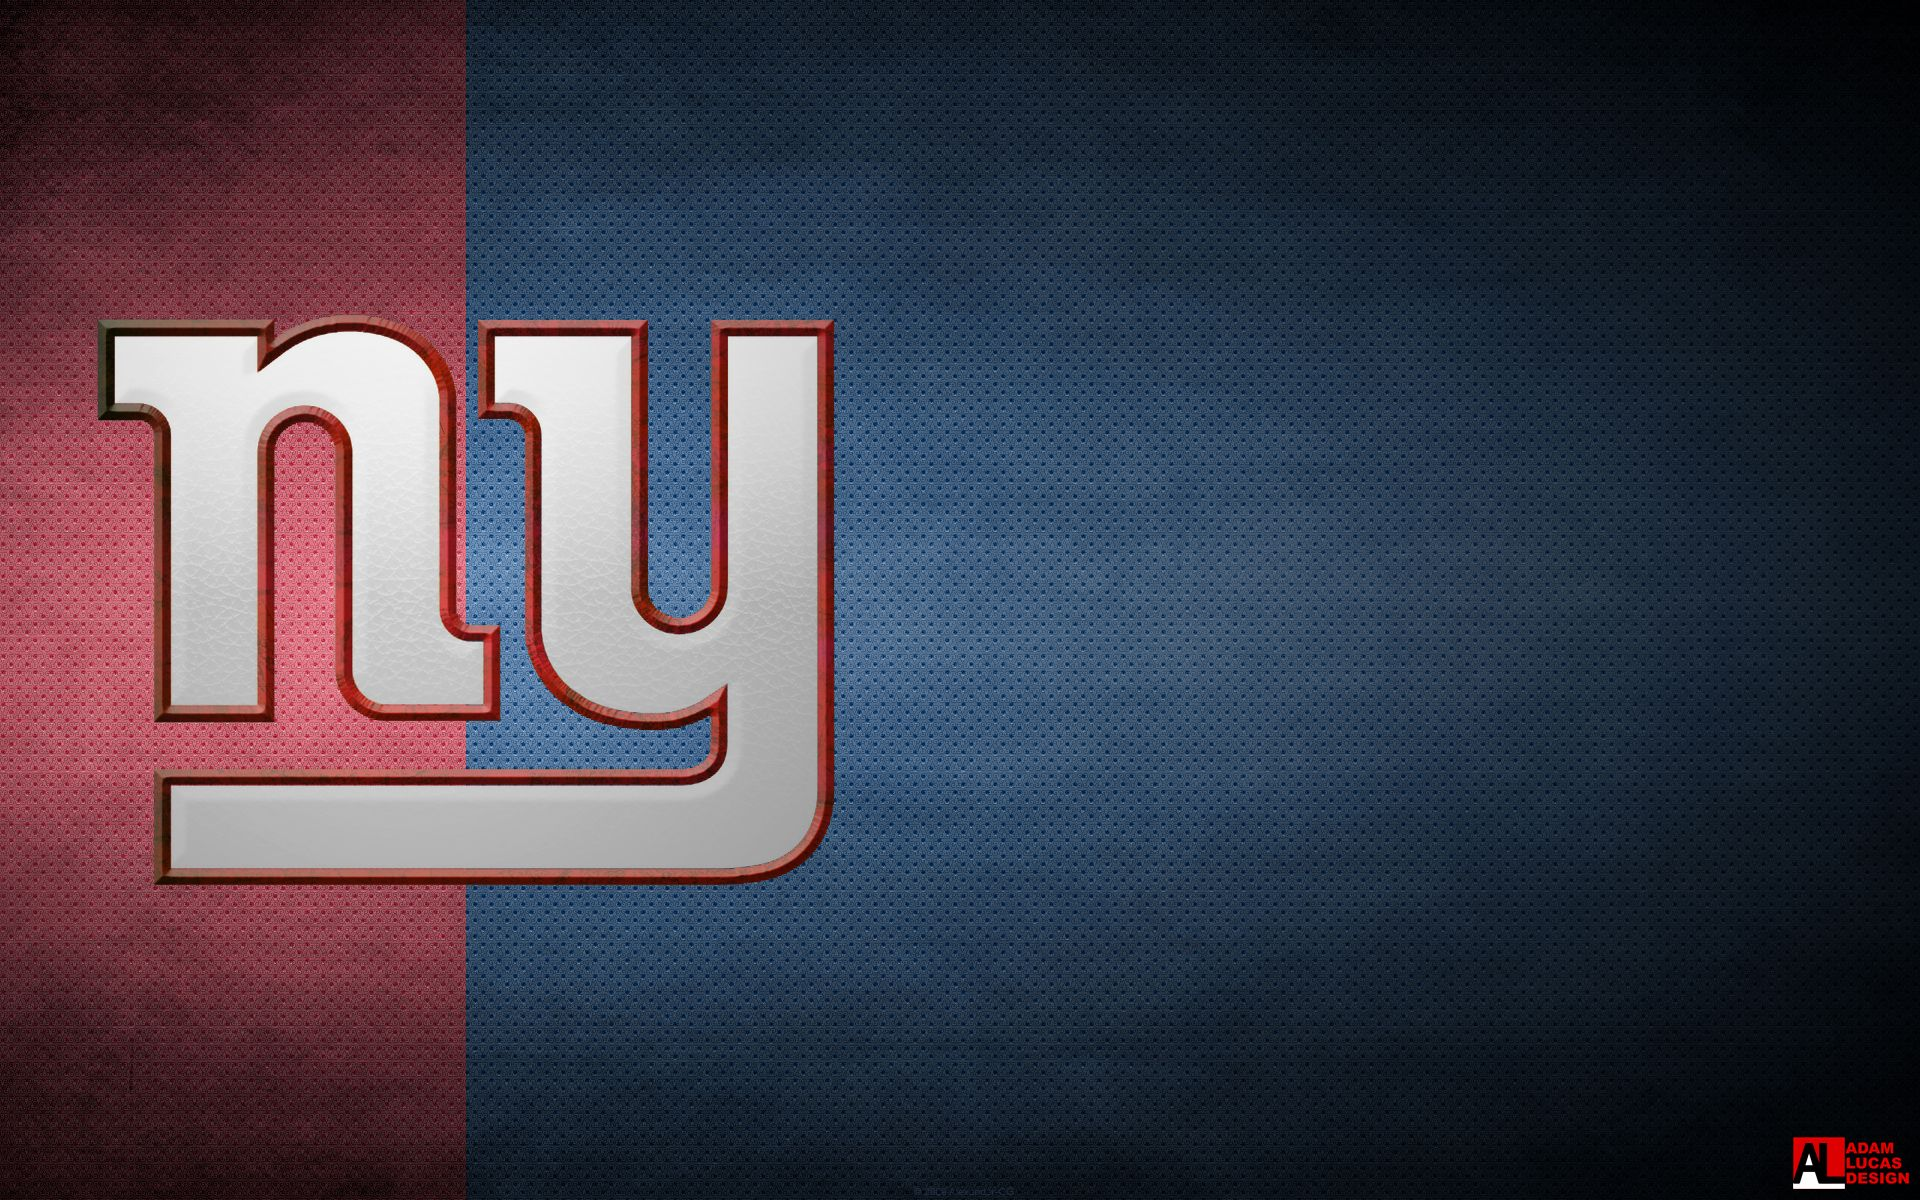 New York Giants Wallpapers Top Free New York Giants Backgrounds Wallpaperaccess